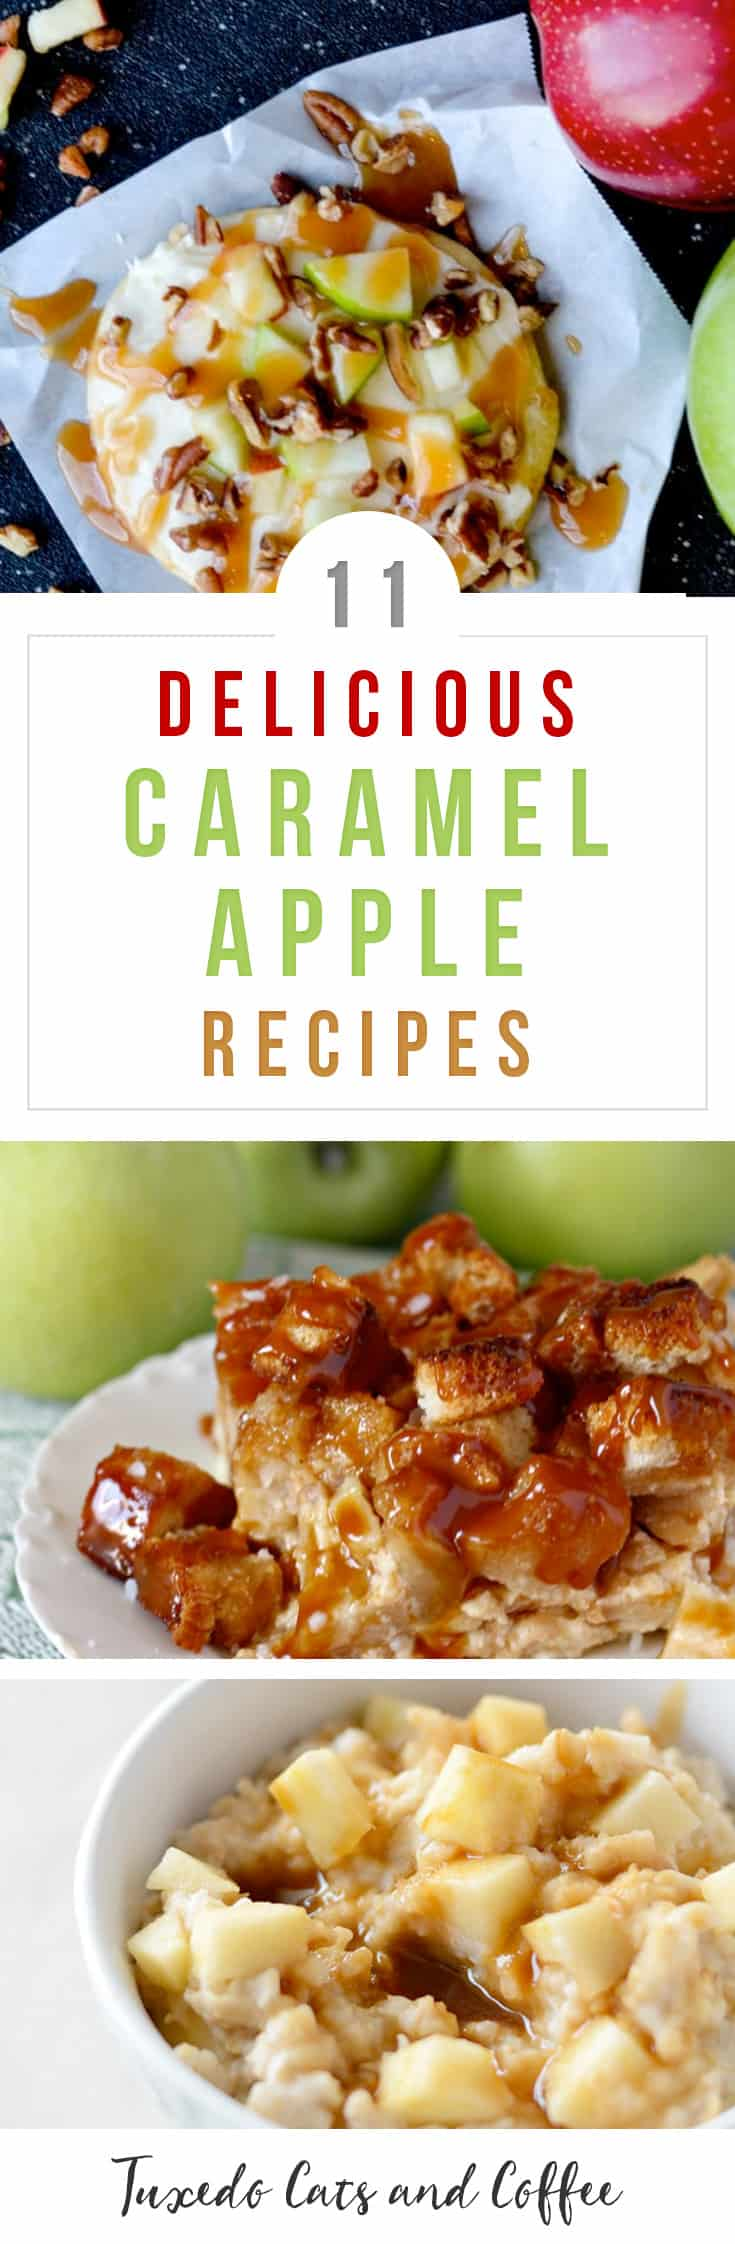 If you love caramel apples or candy apples, then you'll LOVE these delicious caramel apple recipes perfect for fall and autumn or any time you want a comforting dessert. These recipes are inspired by caramel apples.